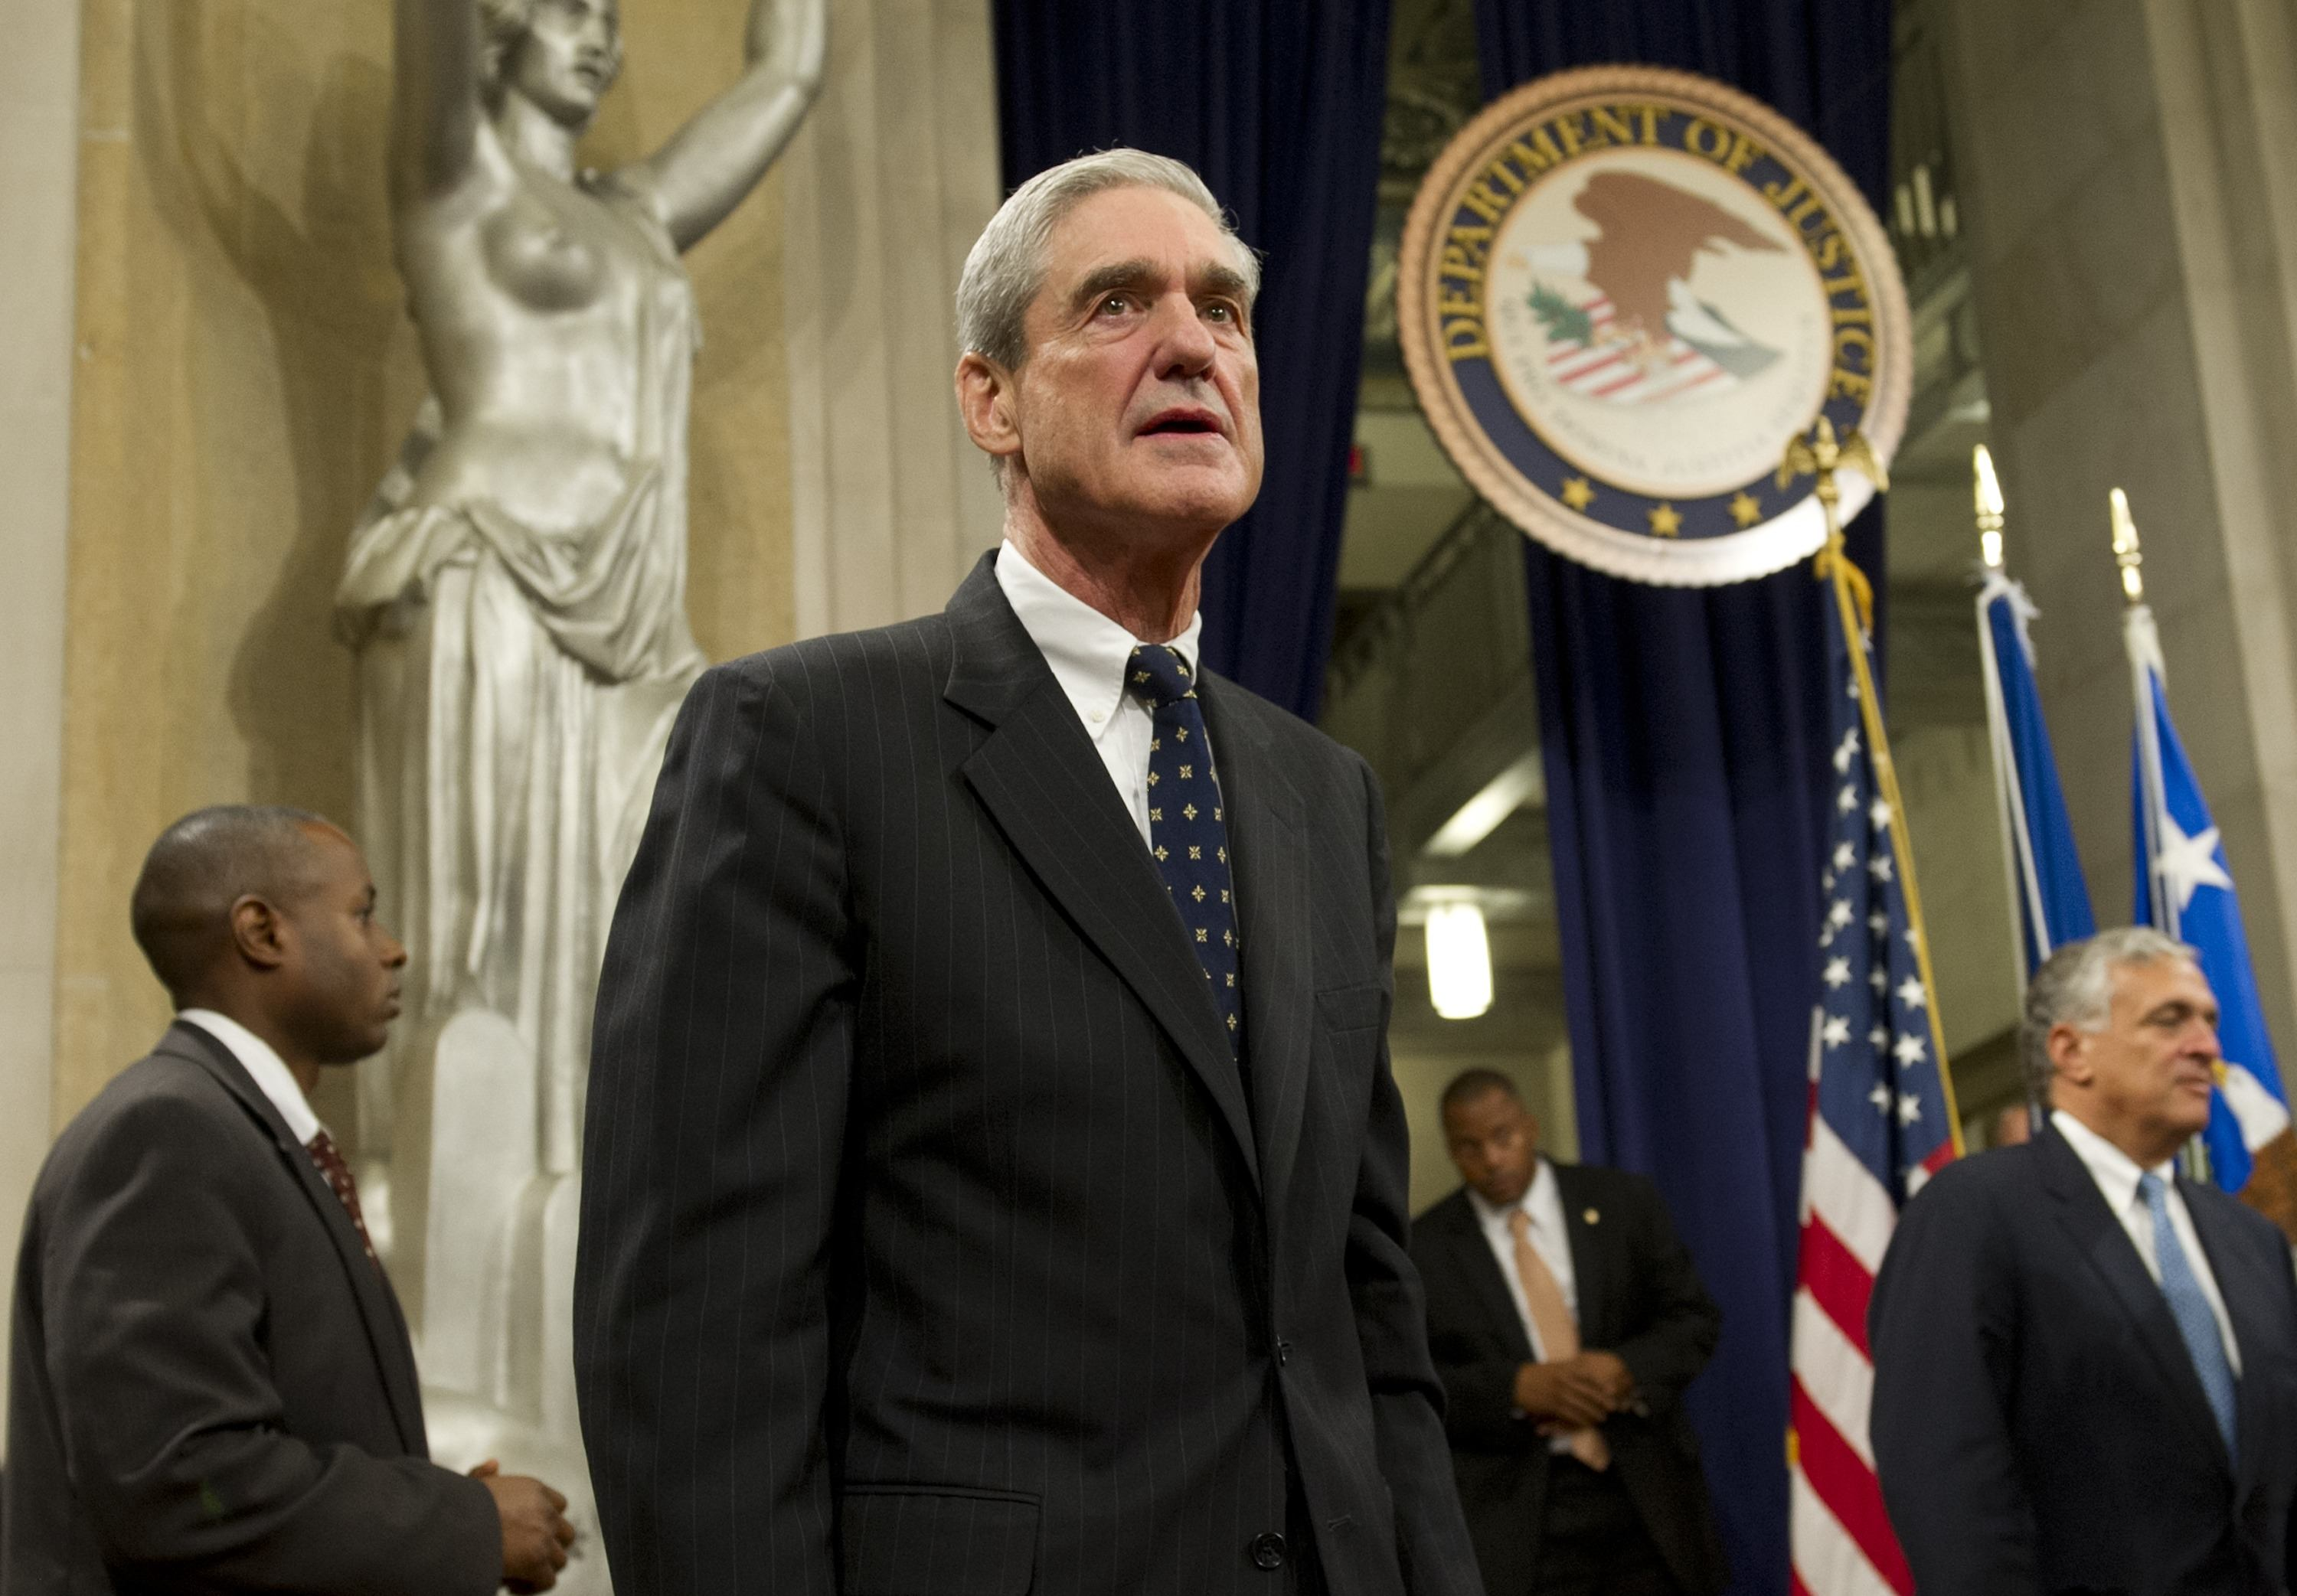 Robert Mueller standing in front of a statue of lady justice and the seal of the Department of Justice.